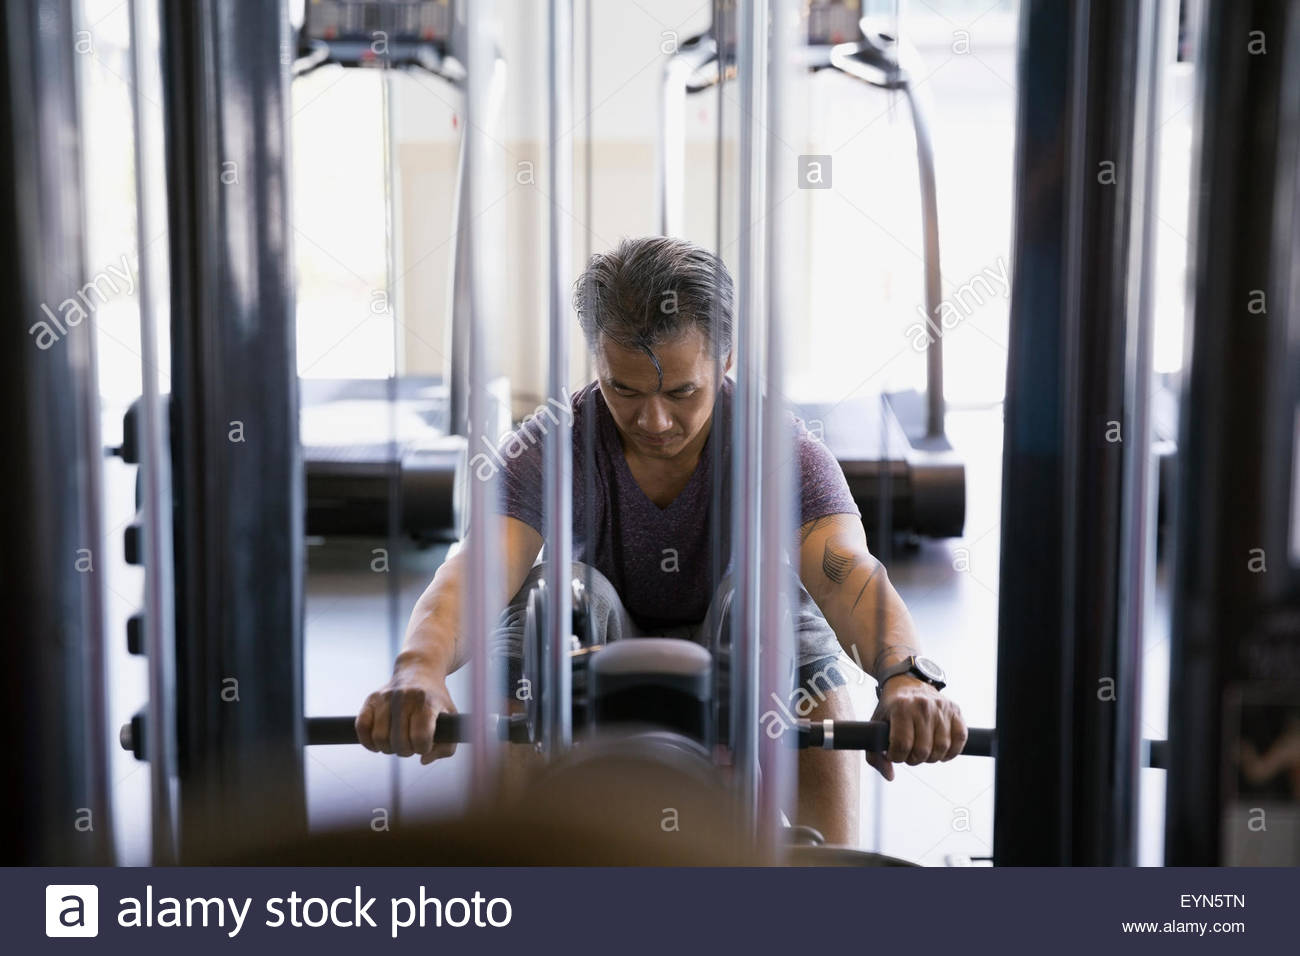 Determined man at seated cable row in gym - Stock Image